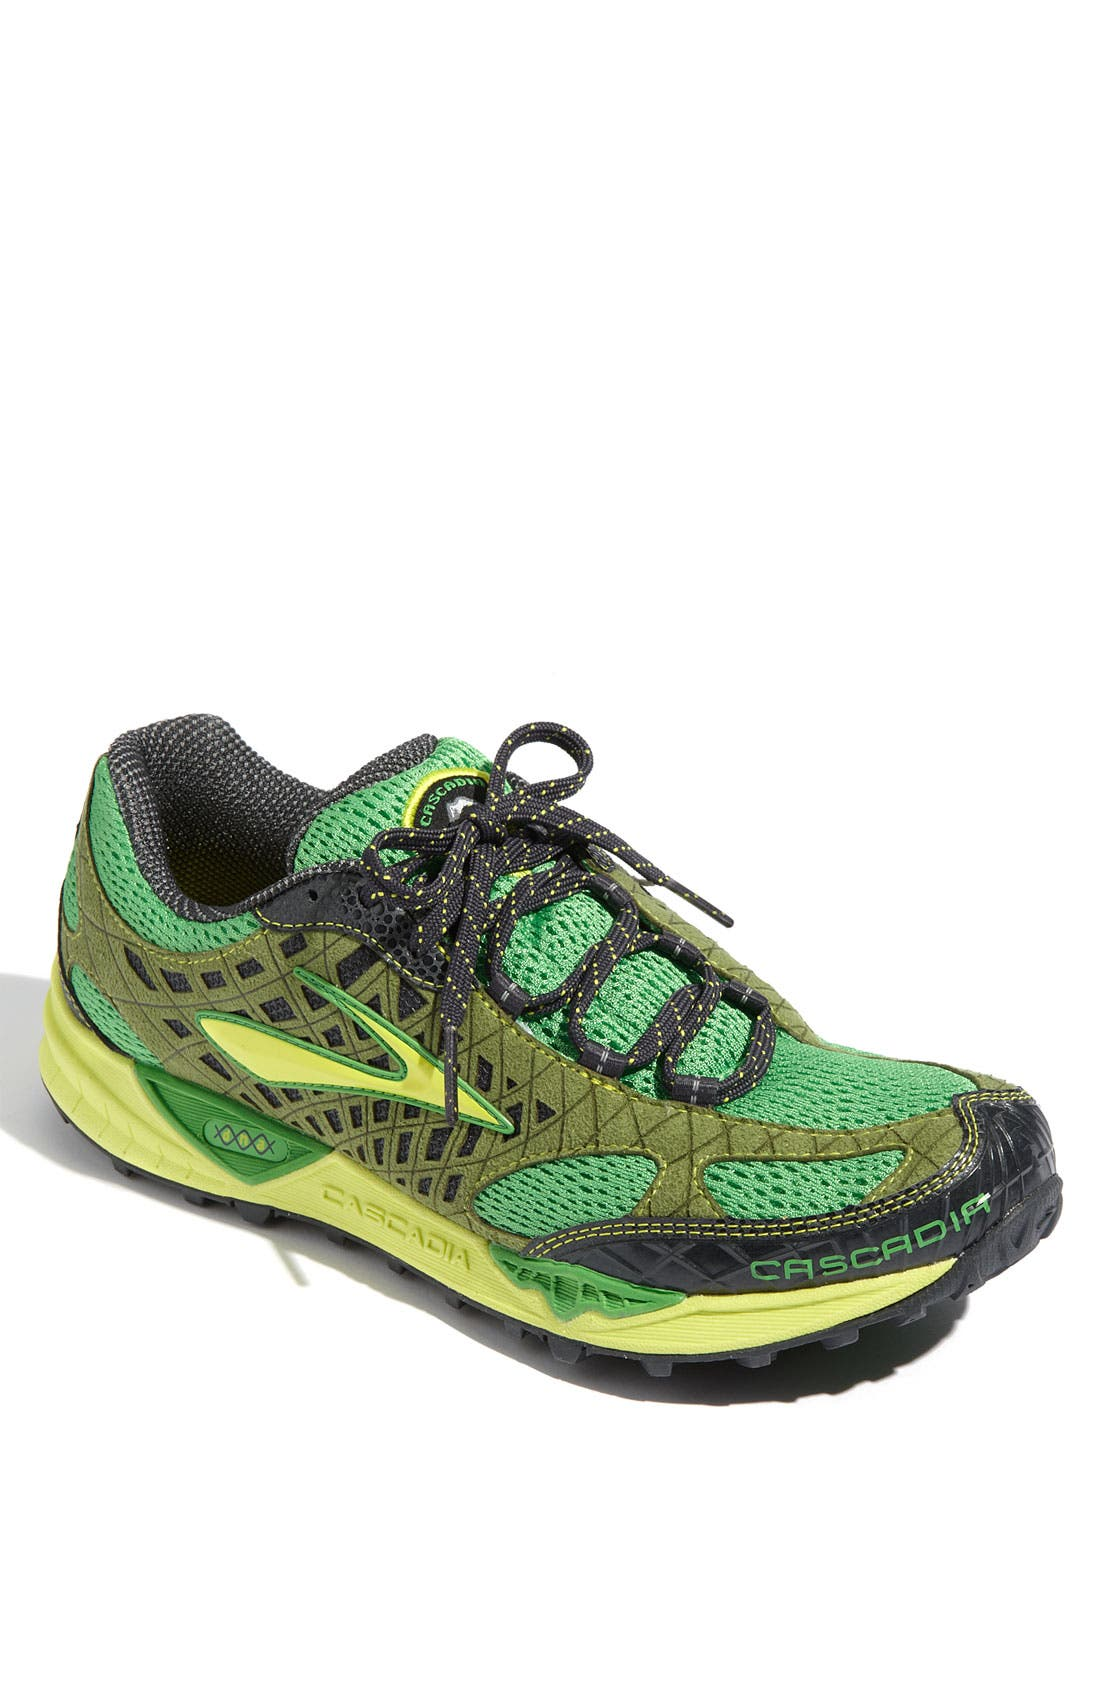 Alternate Image 1 Selected - Brooks 'Cascadia 7' Trail Running Shoe (Men)